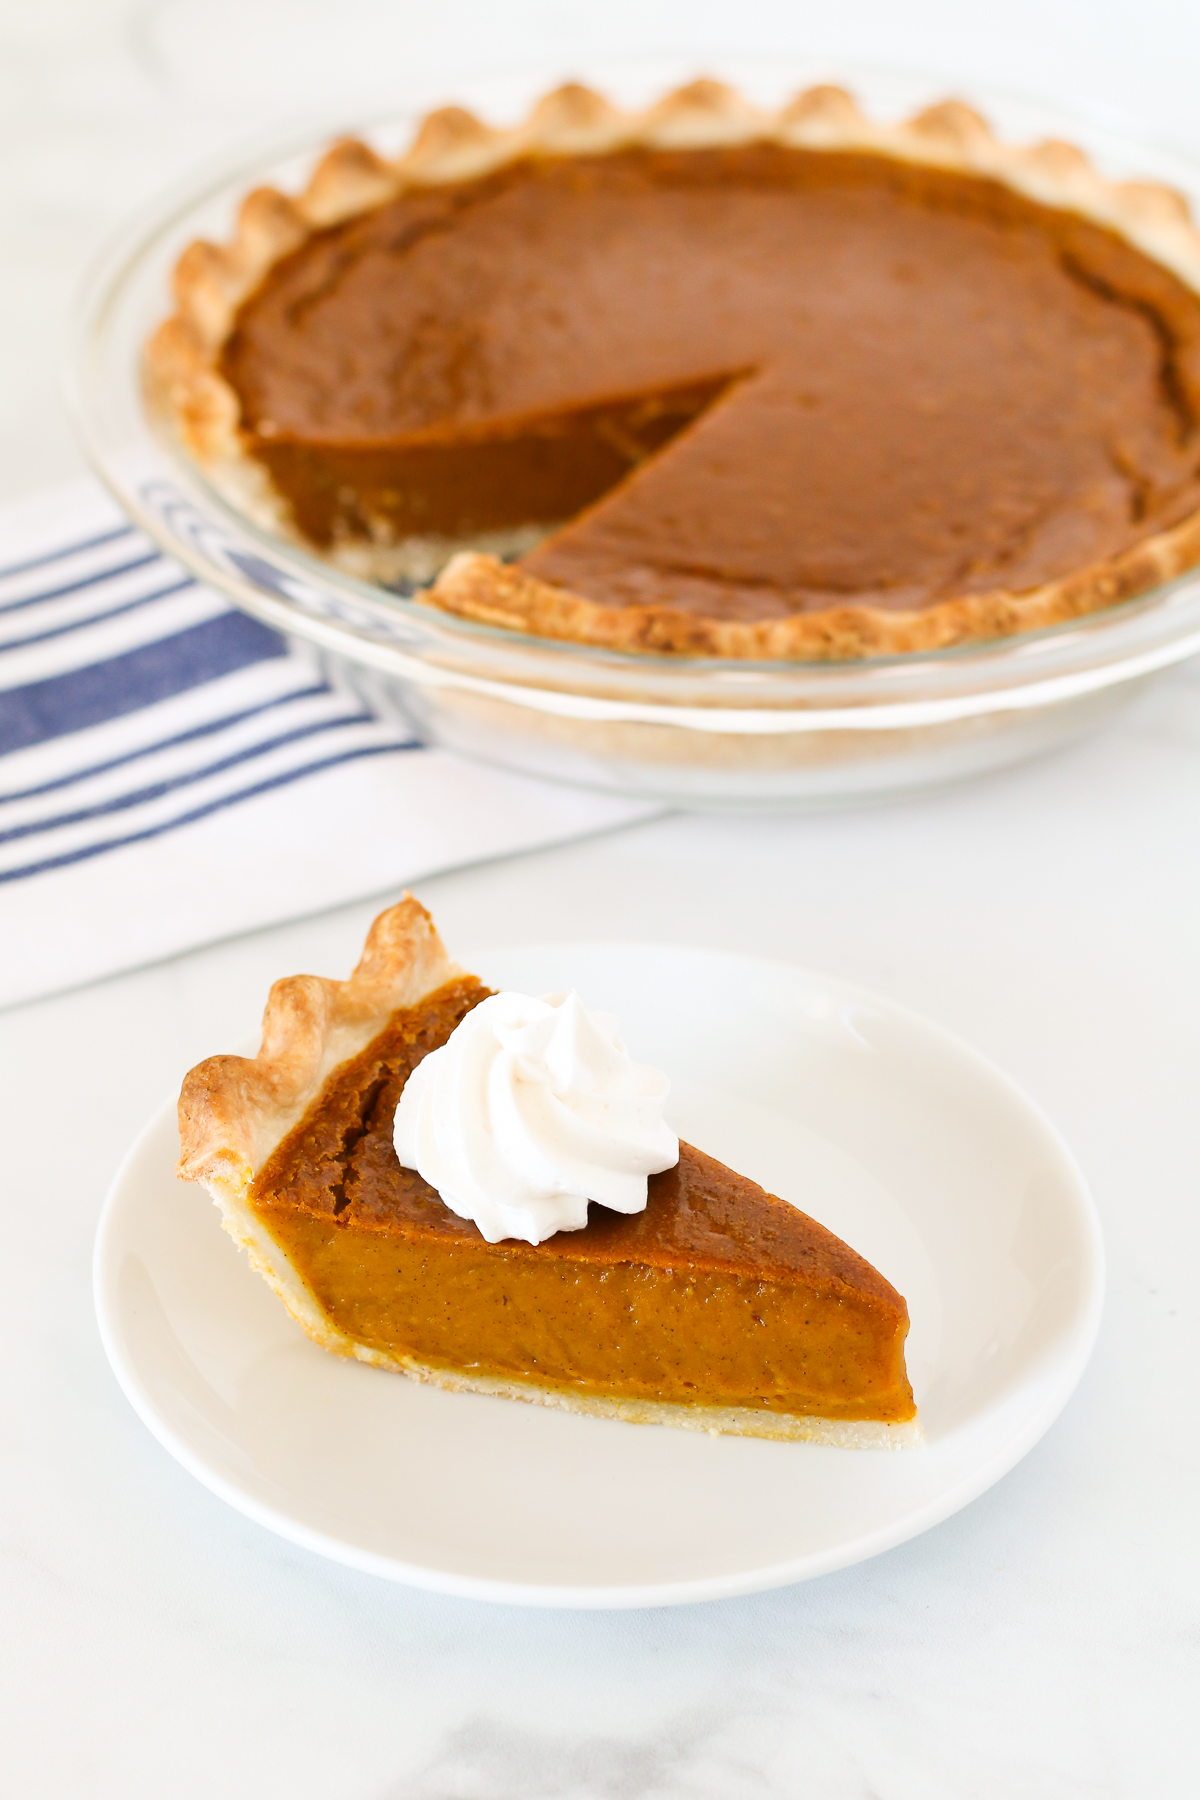 Gluten Free Vegan Pumpkin Pie. Flakey pie crust with a creamy, perfectly spiced pumpkin filling. This pumpkin pie is suitable for any holiday gathering!